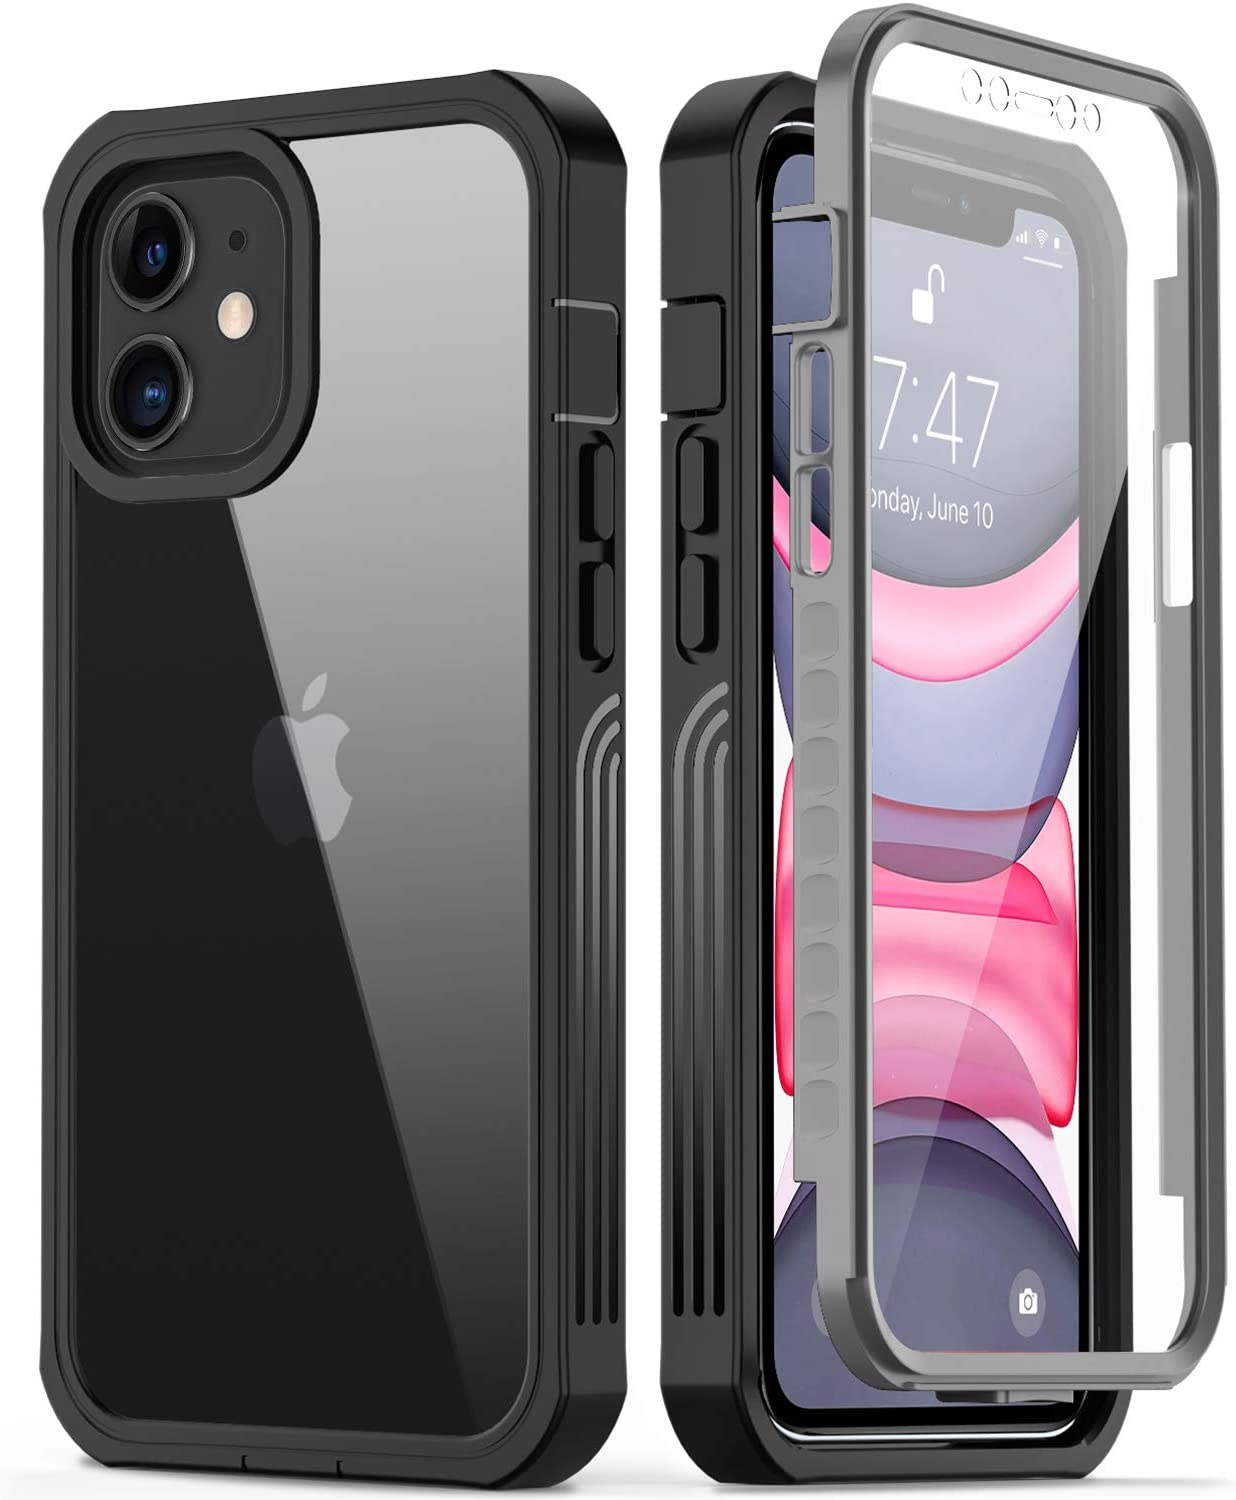 GOODON iPhone 11 Case with Built-in Screen Protector,Pass 20 ft. Drop Test Military Grade Shockproof Clear Cover 360 Full Body Protective Phone Case for Apple iPhone 11 6.1